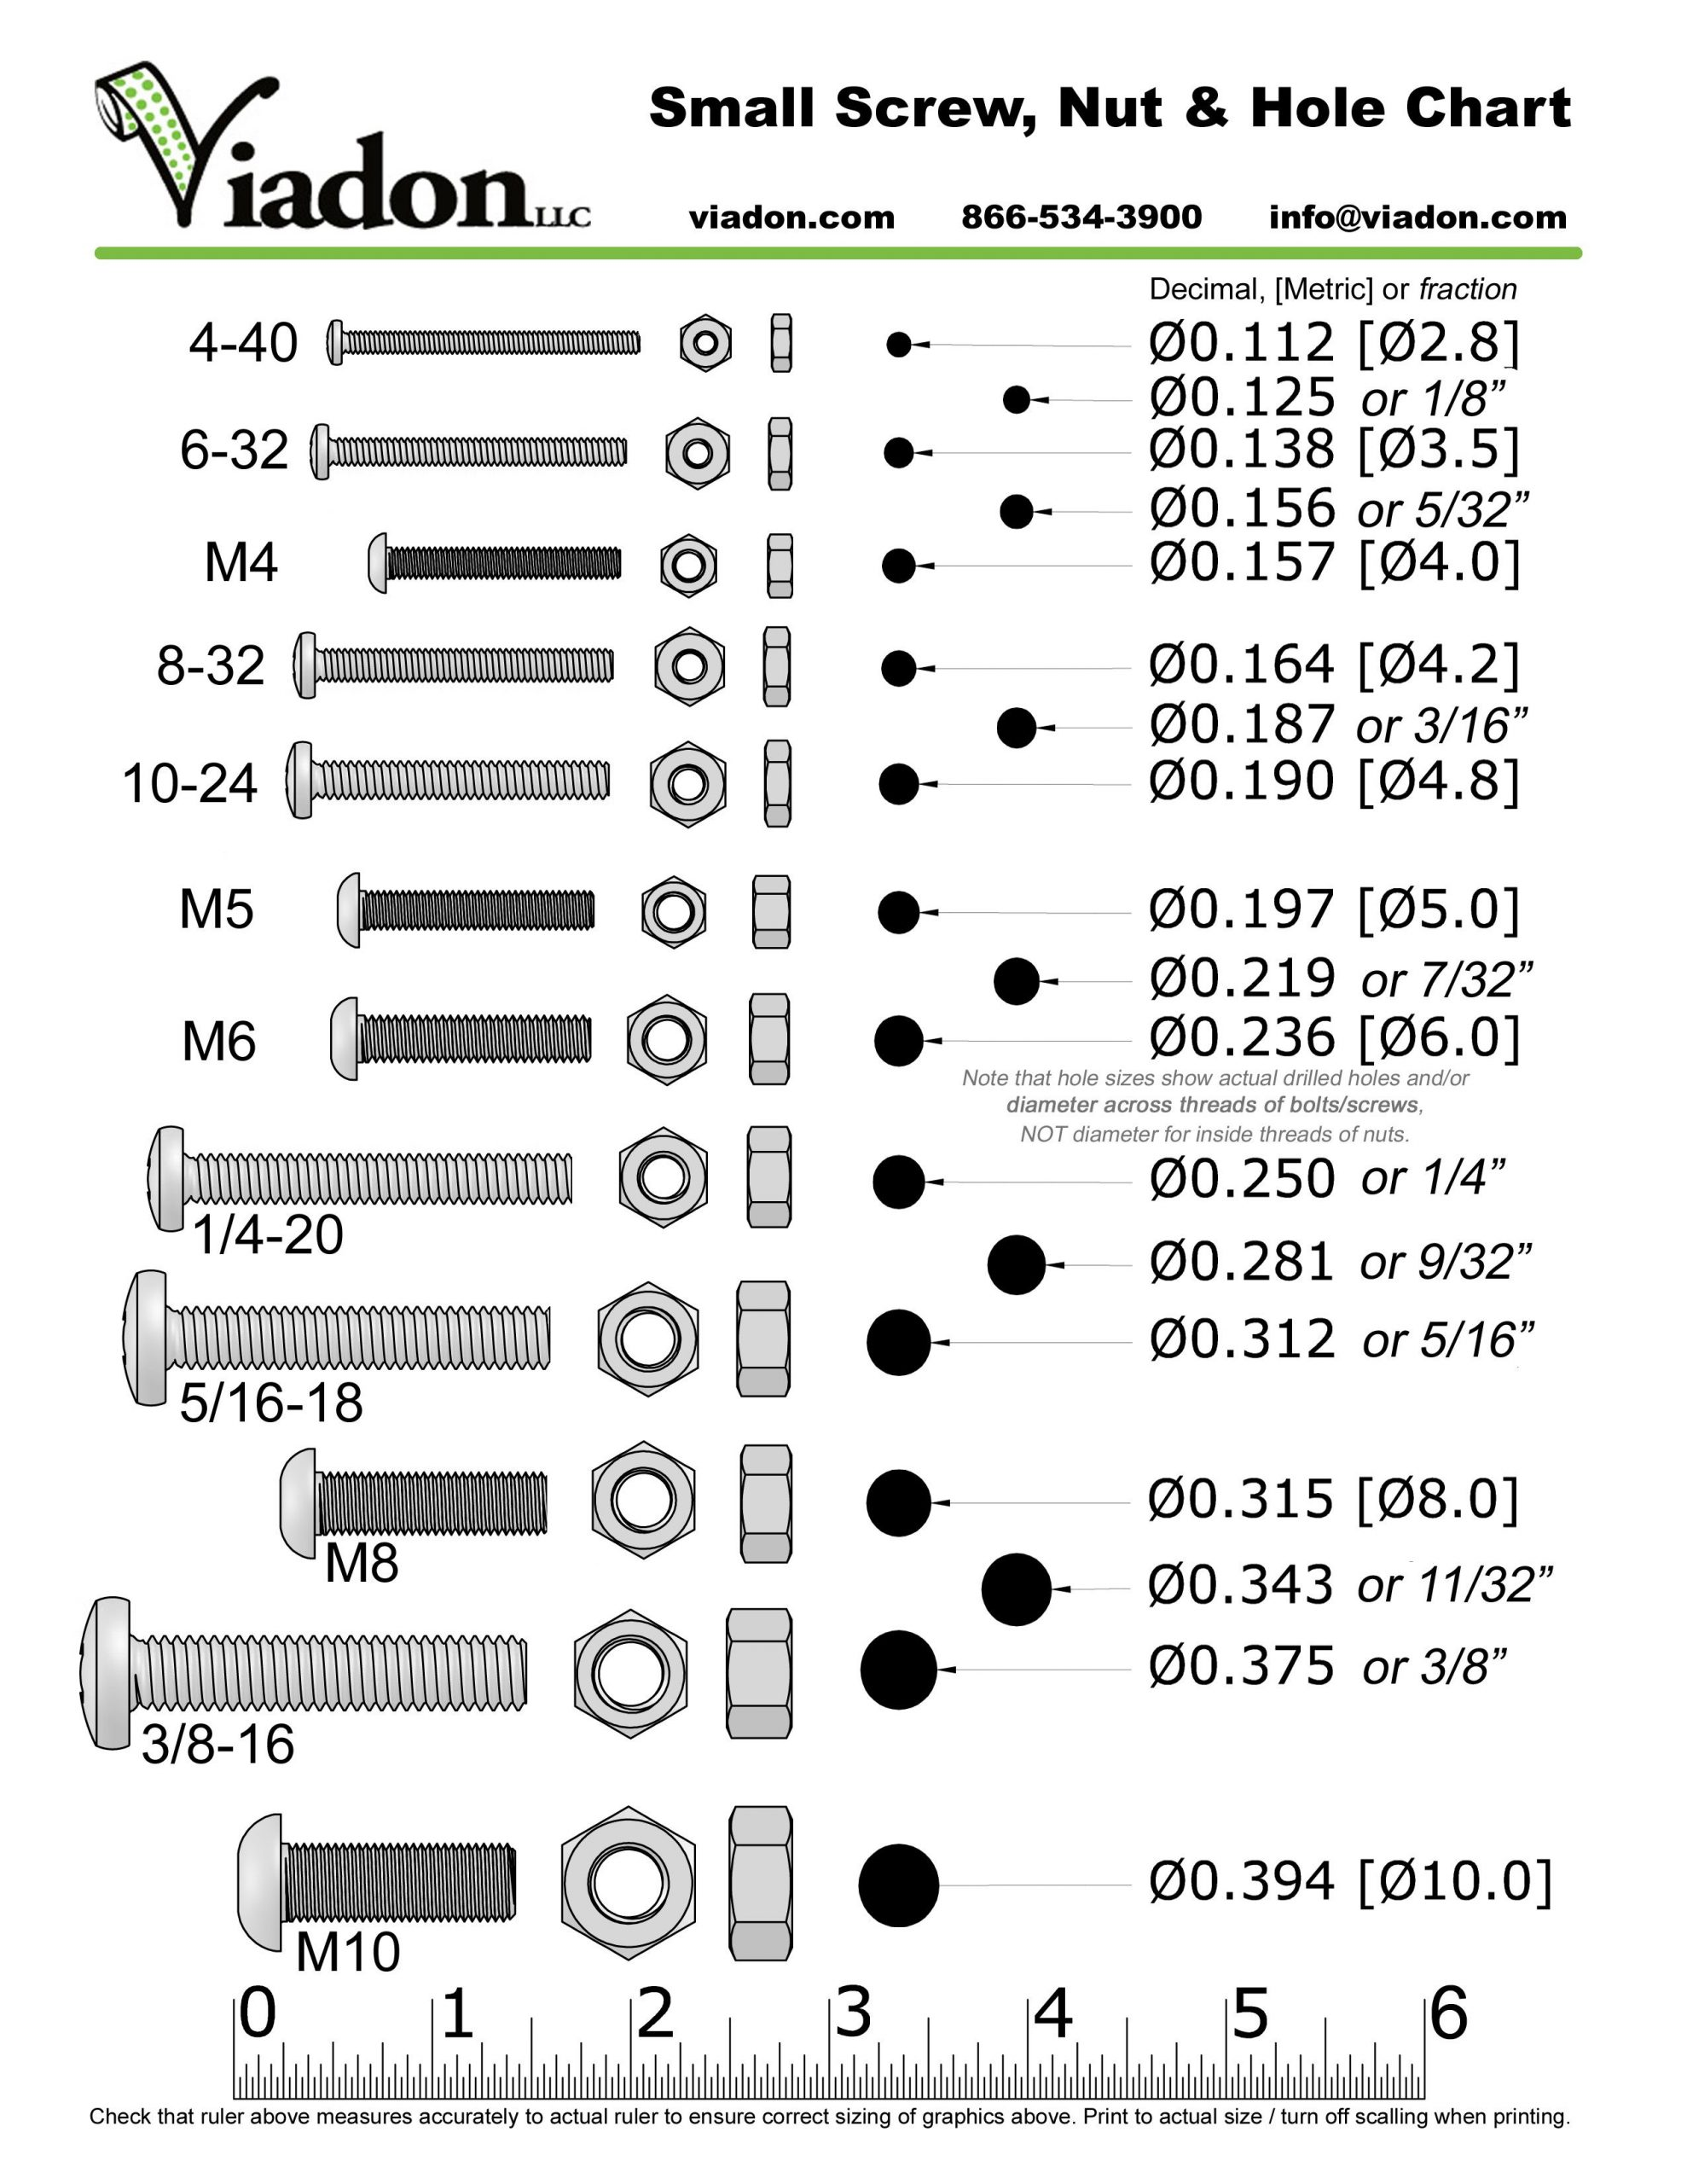 Chart Comparing Standard Screw / Nut / Hole Sizes | Metric